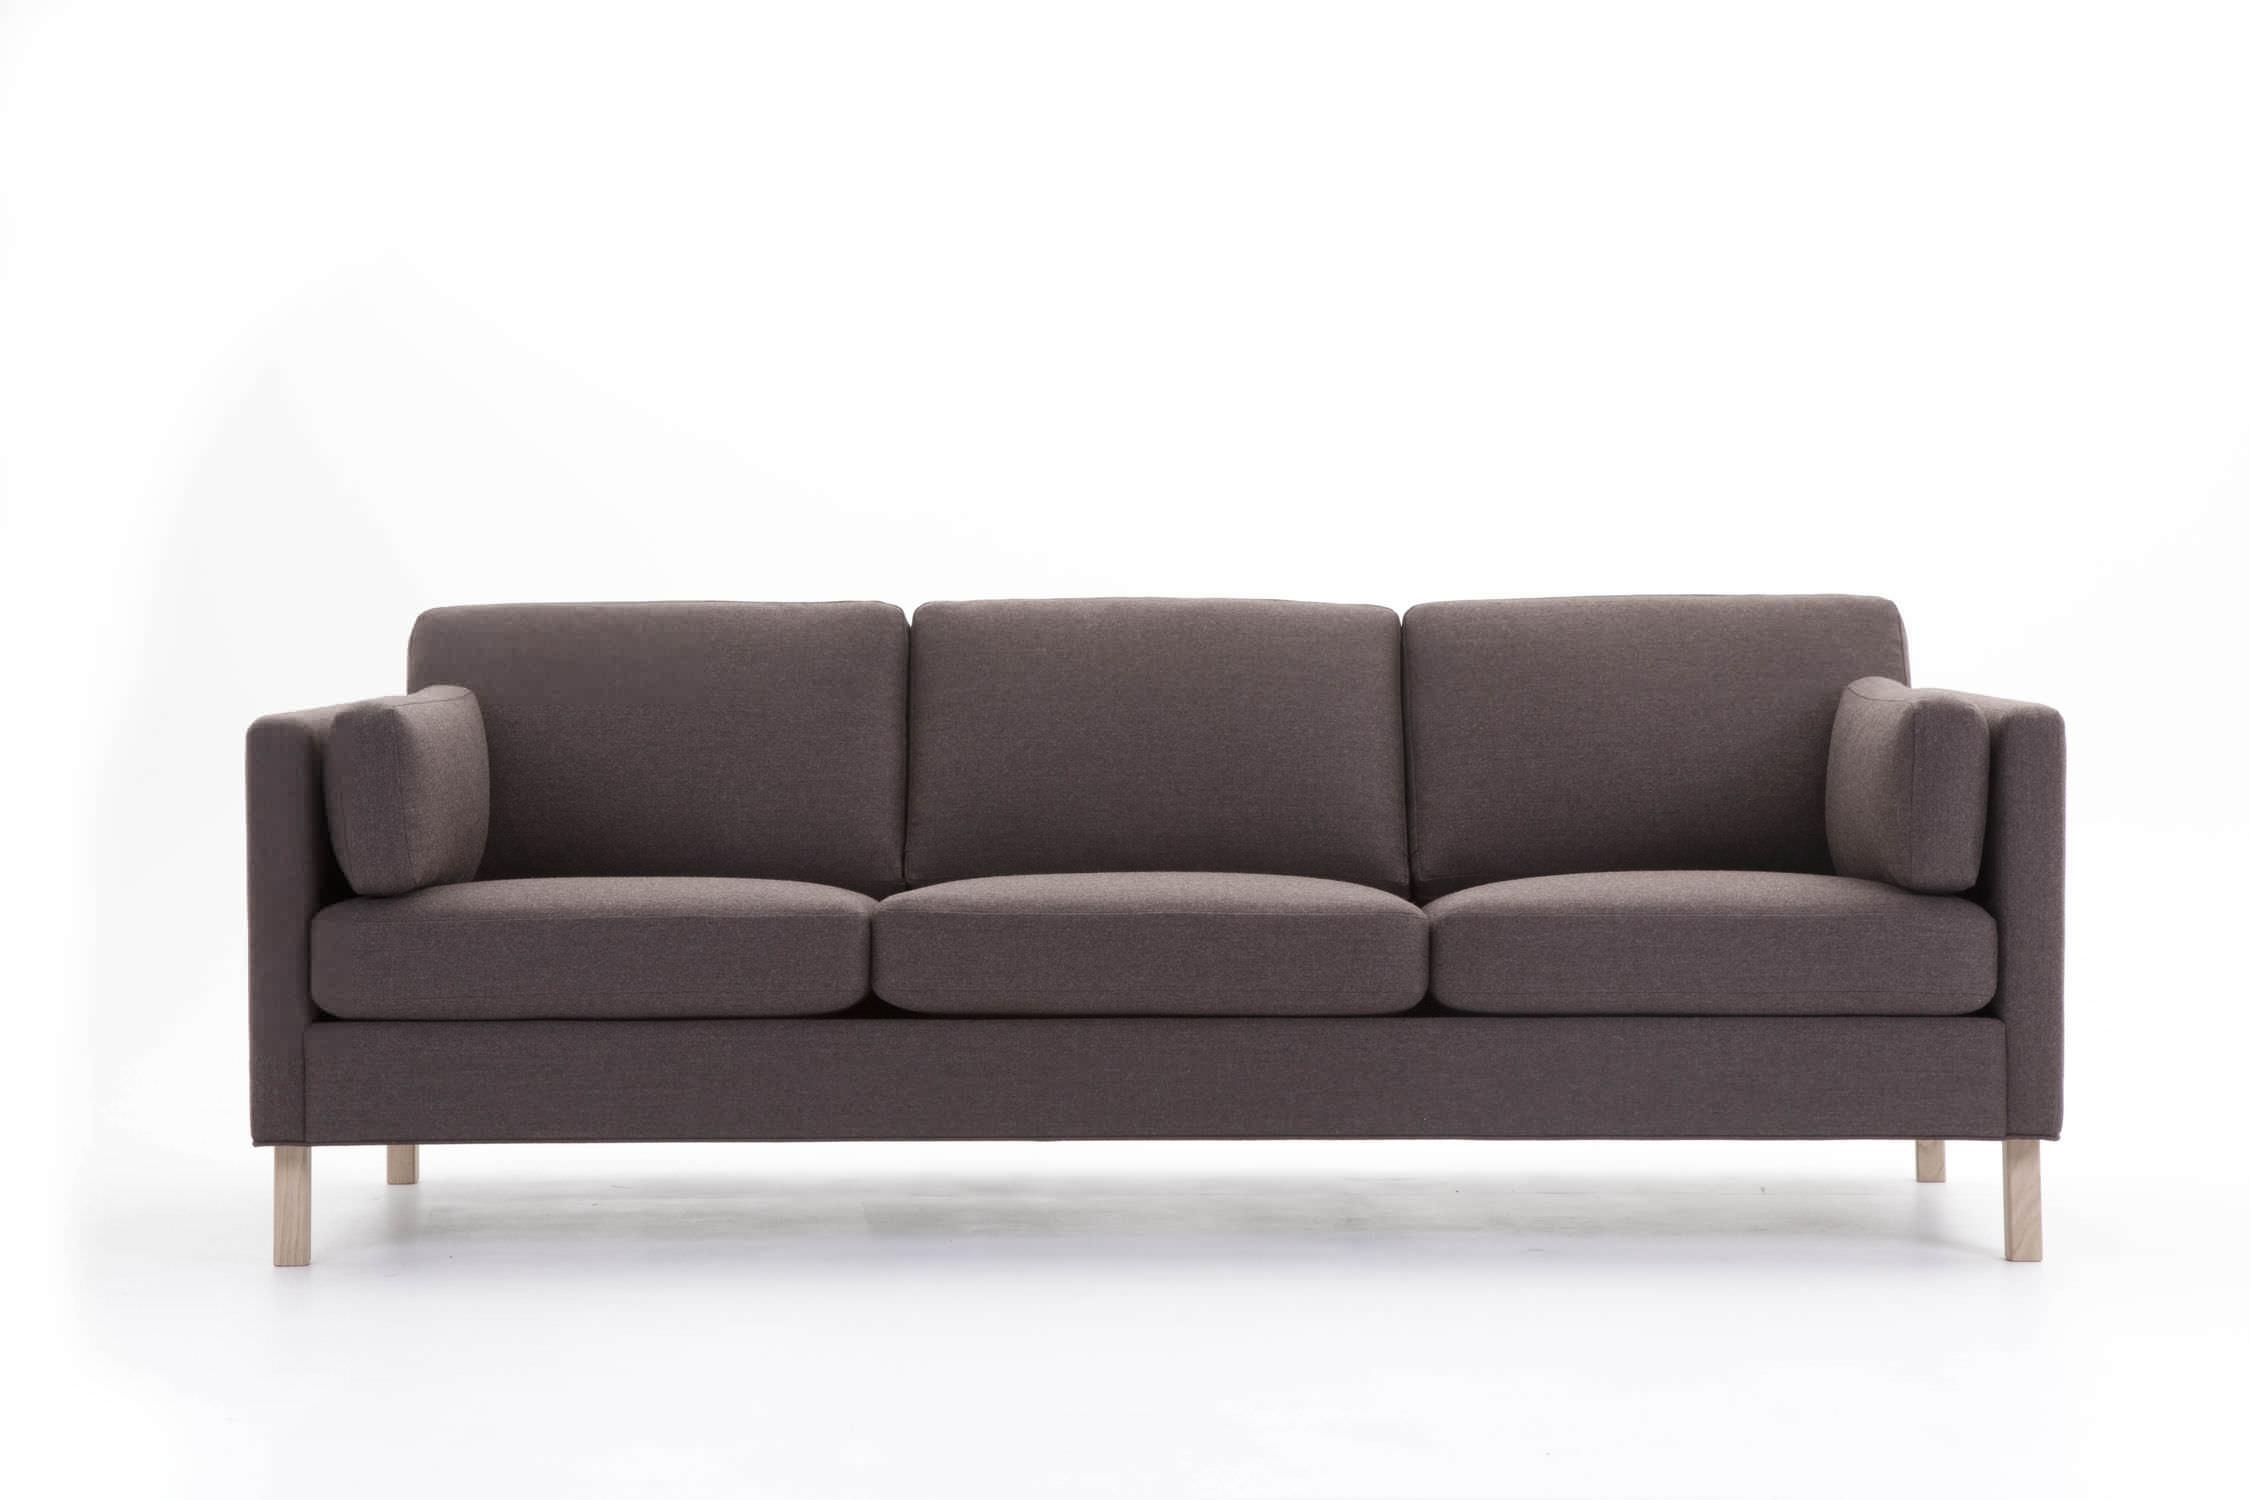 Contemporary Sofa / Fabric / 3 Seater / With Removable Cover Throughout Sofa With Removable Cover (View 3 of 20)